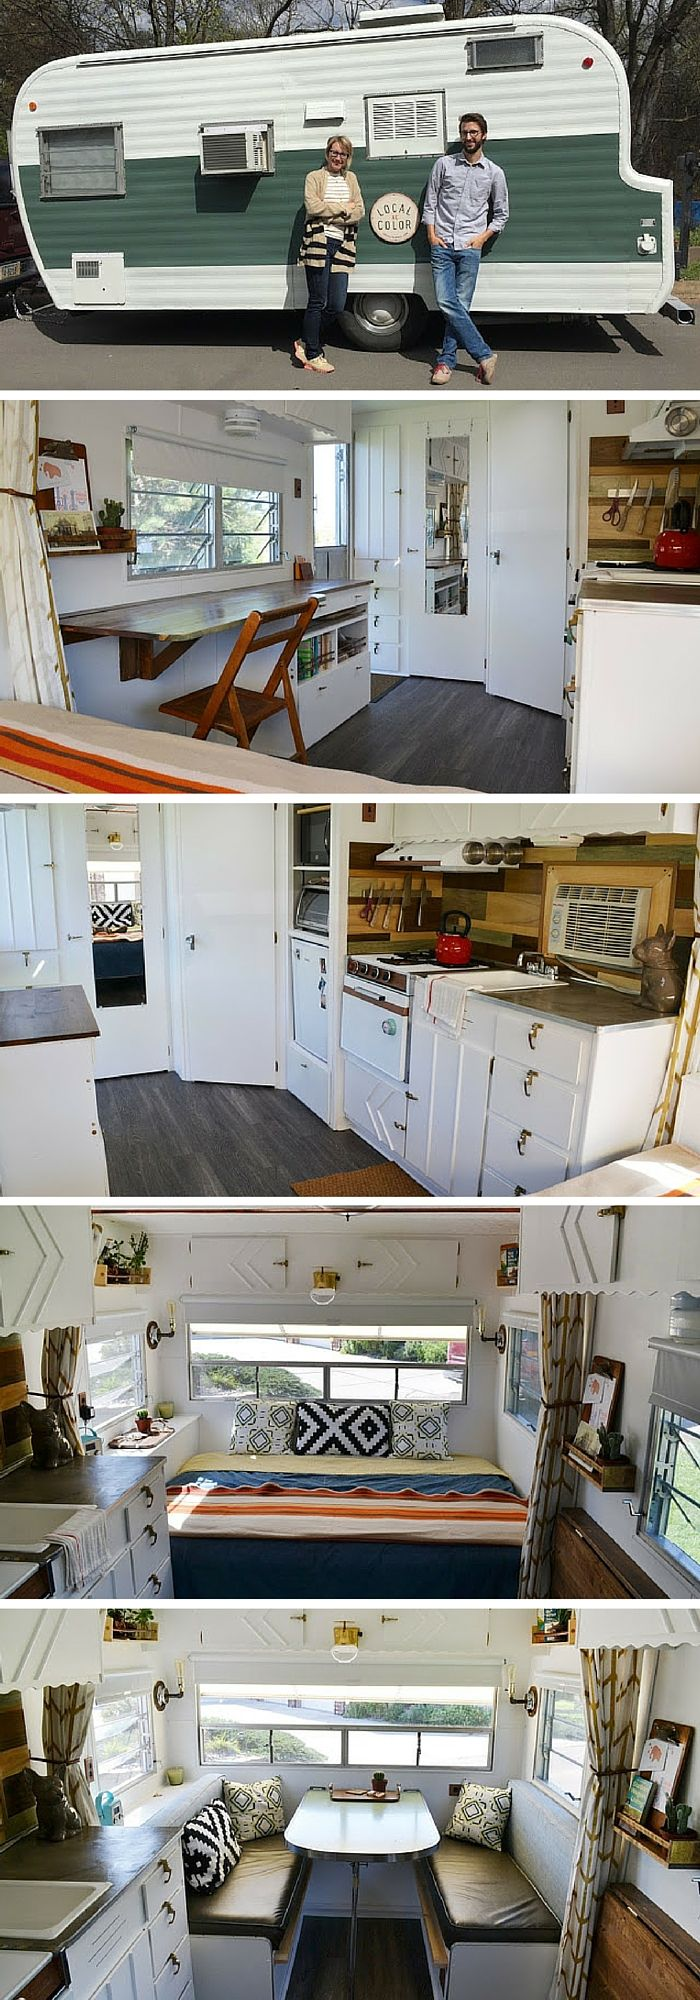 300 best rv decorating ideas images on pinterest camper a couple from nebraska bought this 1960 s trailer and remodelled it into a home to travel